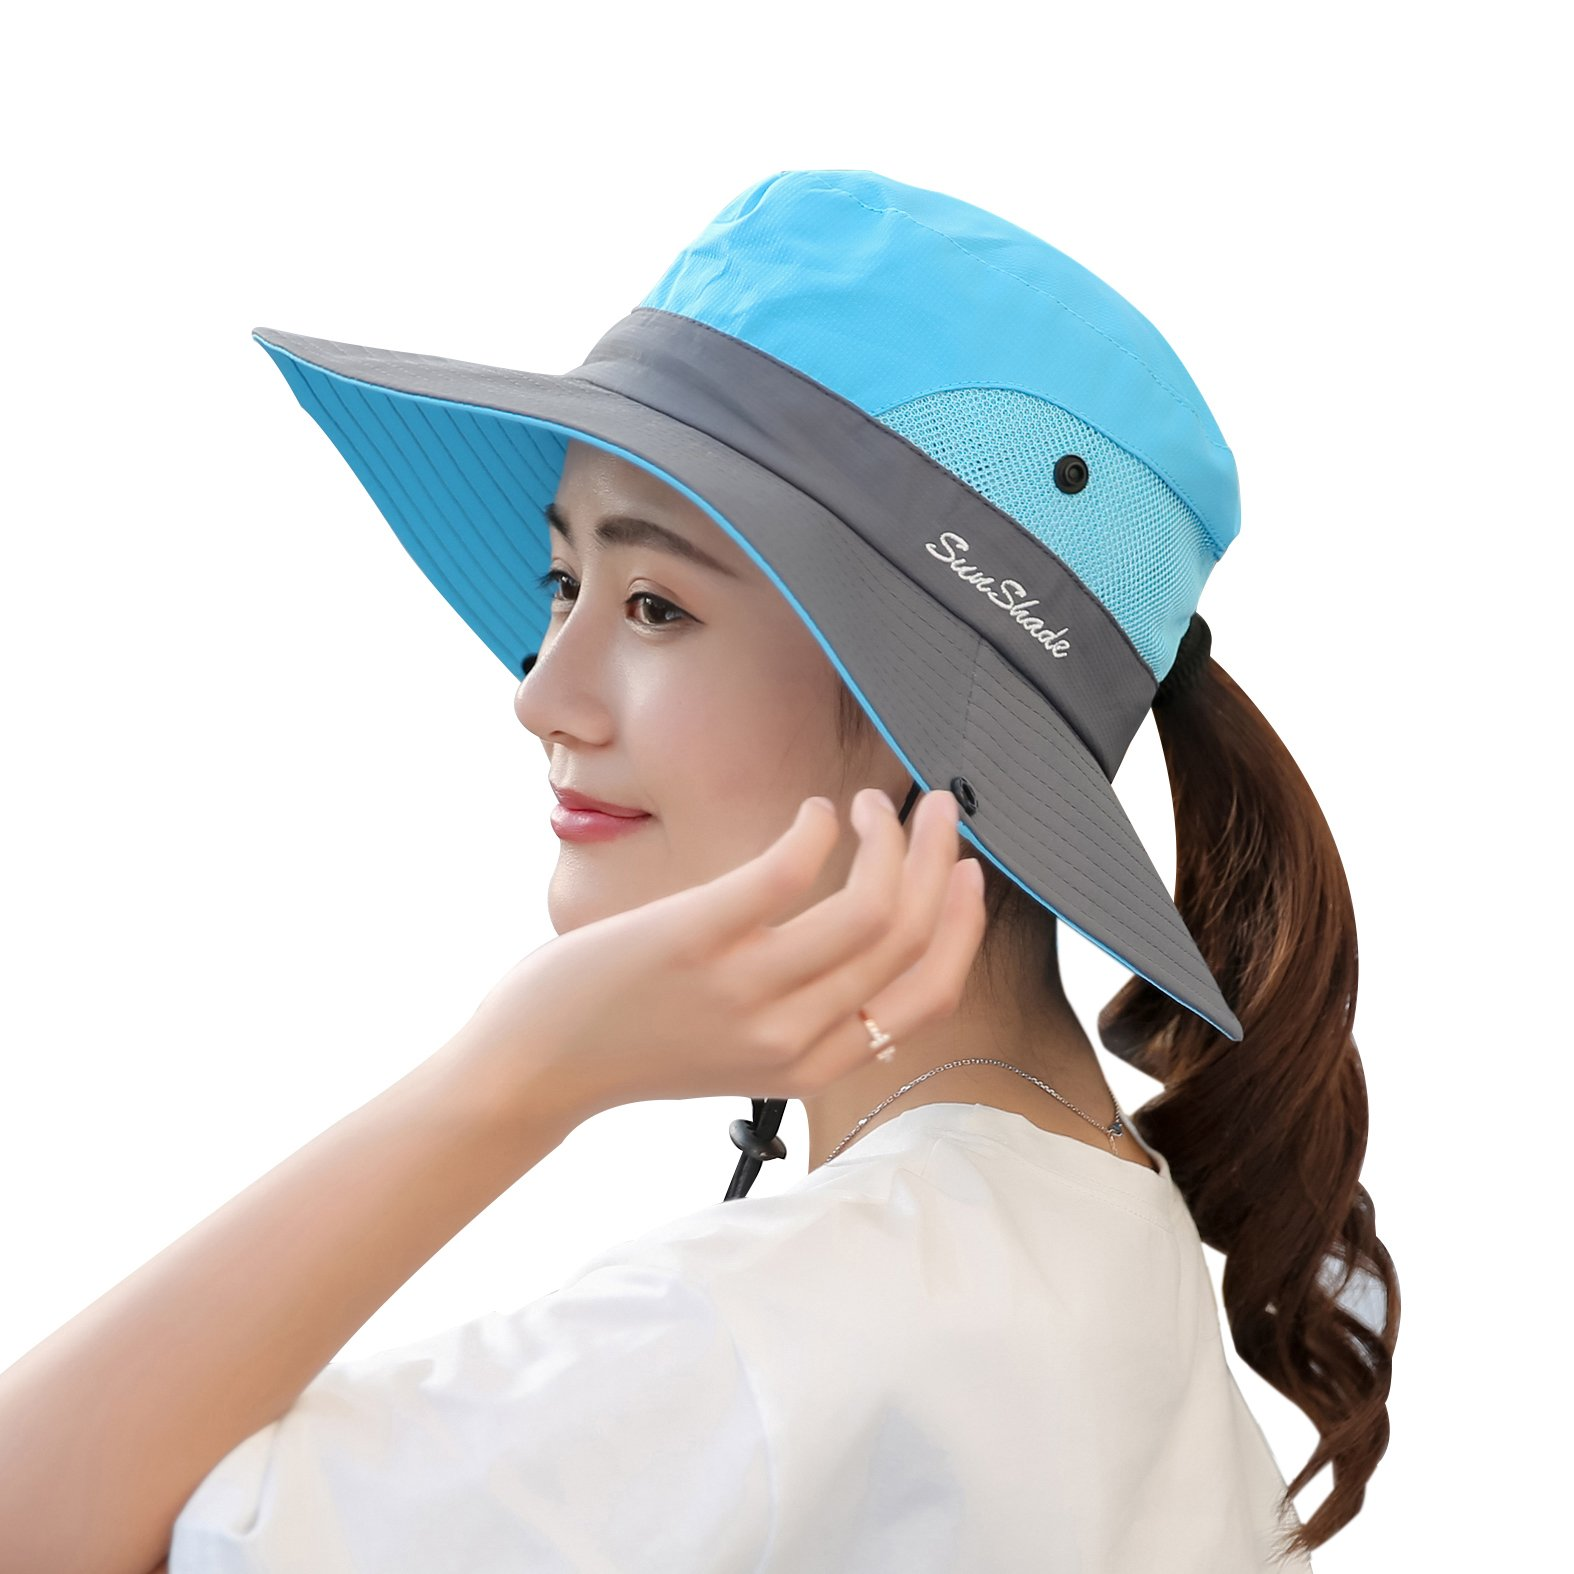 Muryobao Women's Summer Sun Hat Outdoor UV Protection Foldable Wide Brim Bucket Boonie Hats Beach Safari Fishing Cap Sky Blue